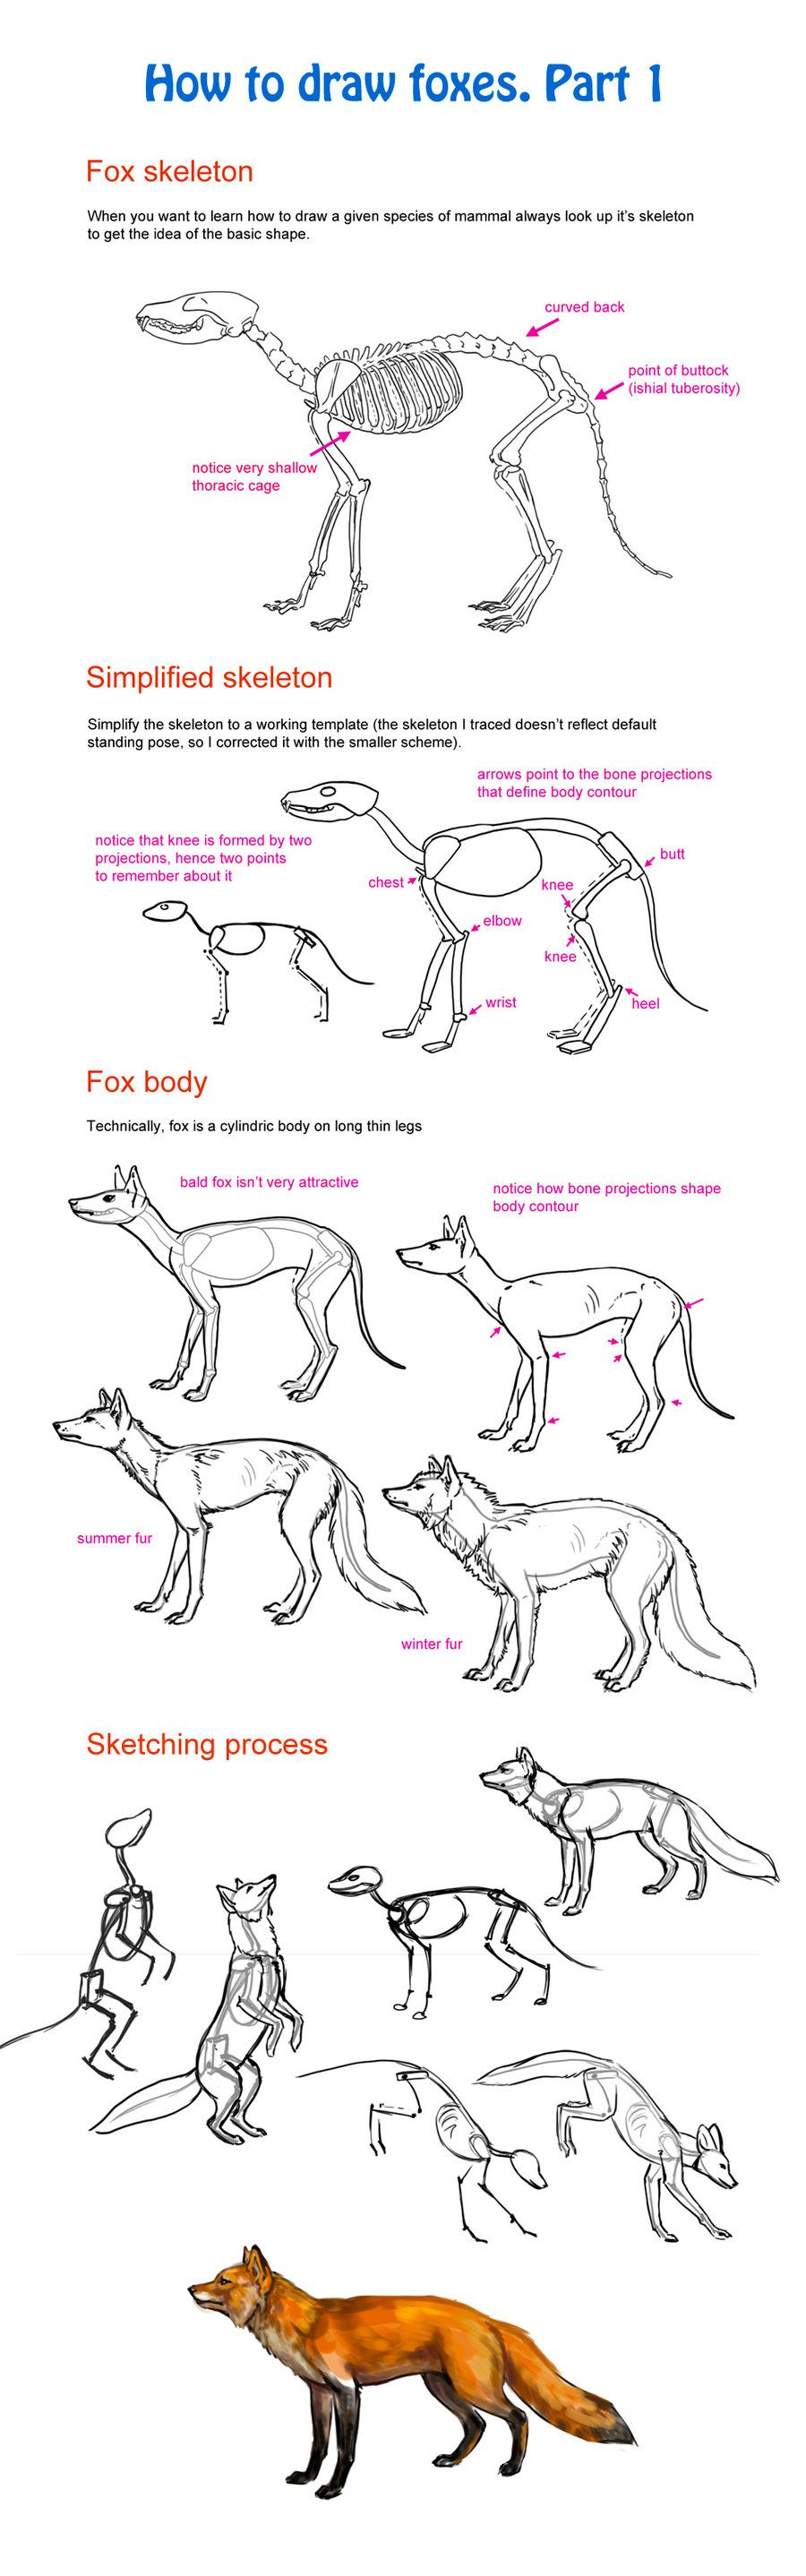 How to draw fox, part 1 by Elruu.deviantart.com on @deviantART